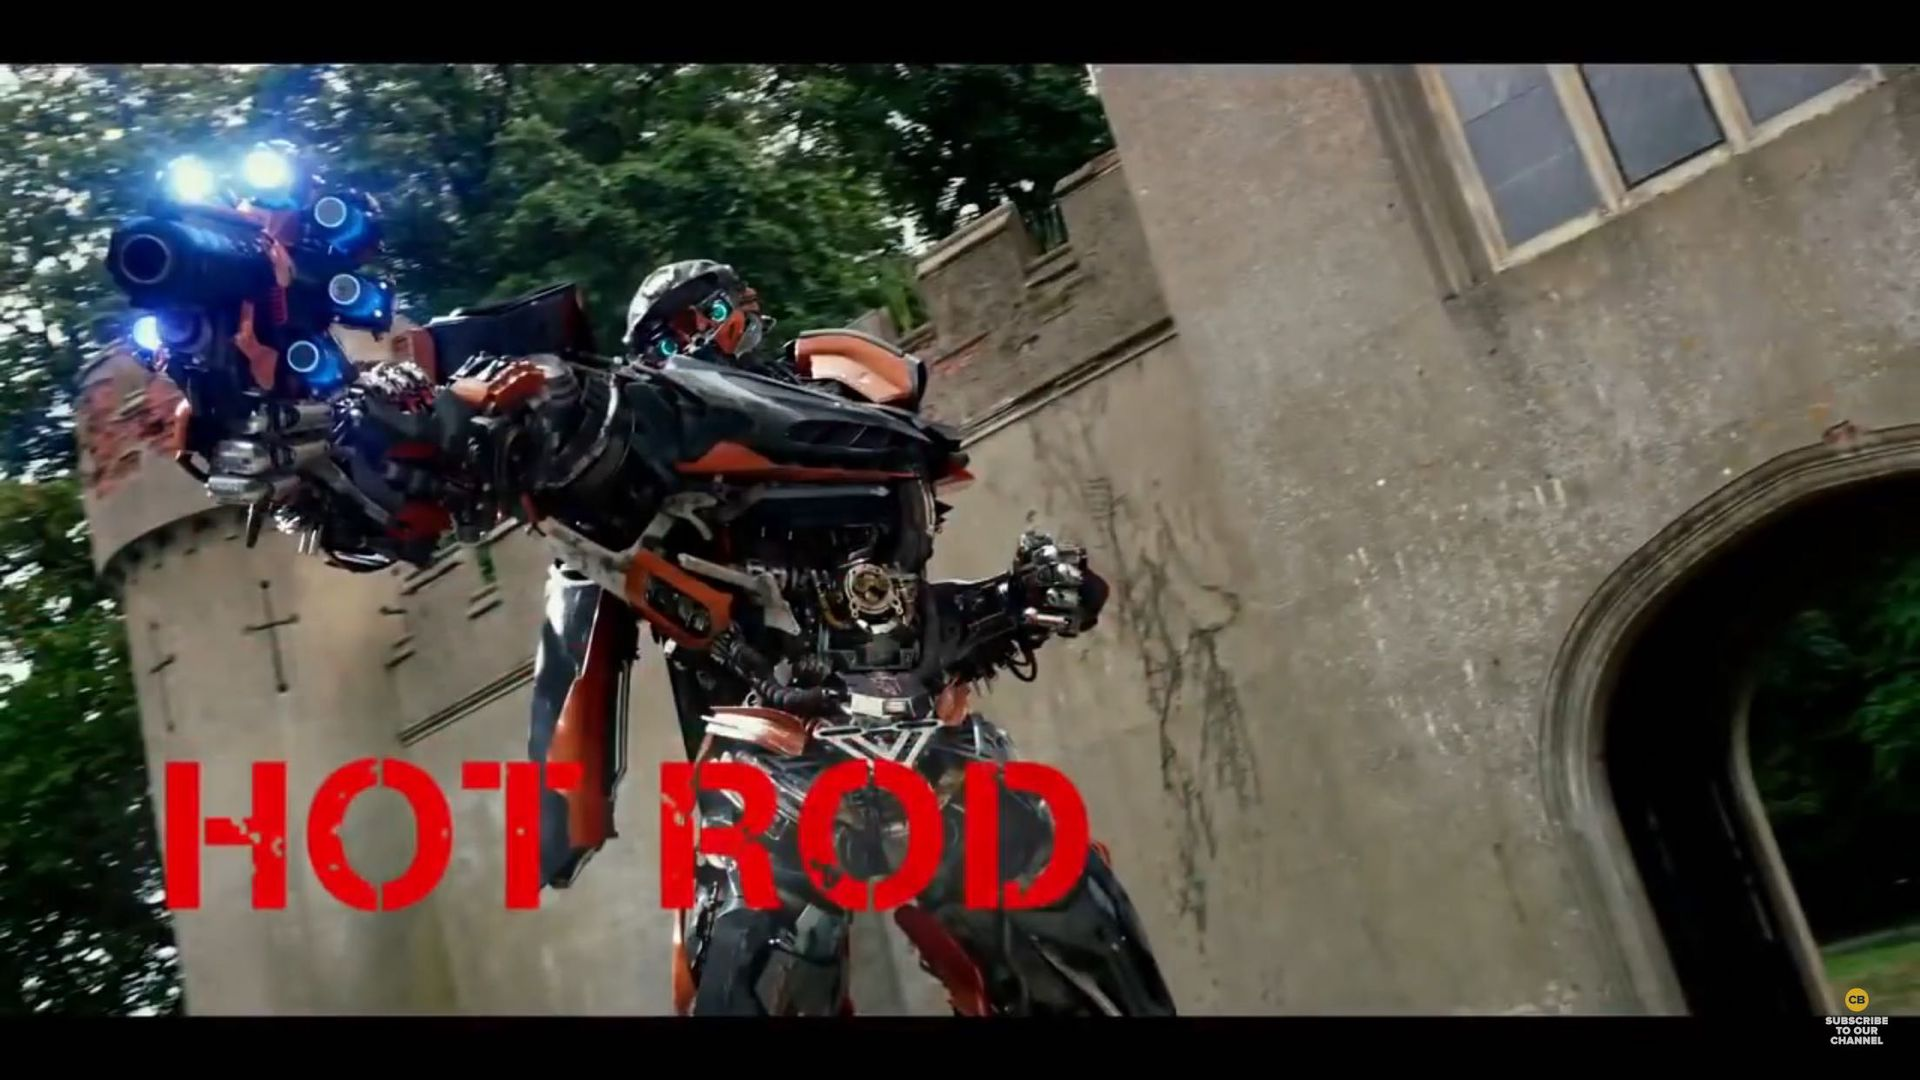 Hot Rod X Reader Bayverse Hot Rod X Femme Reader Part 1